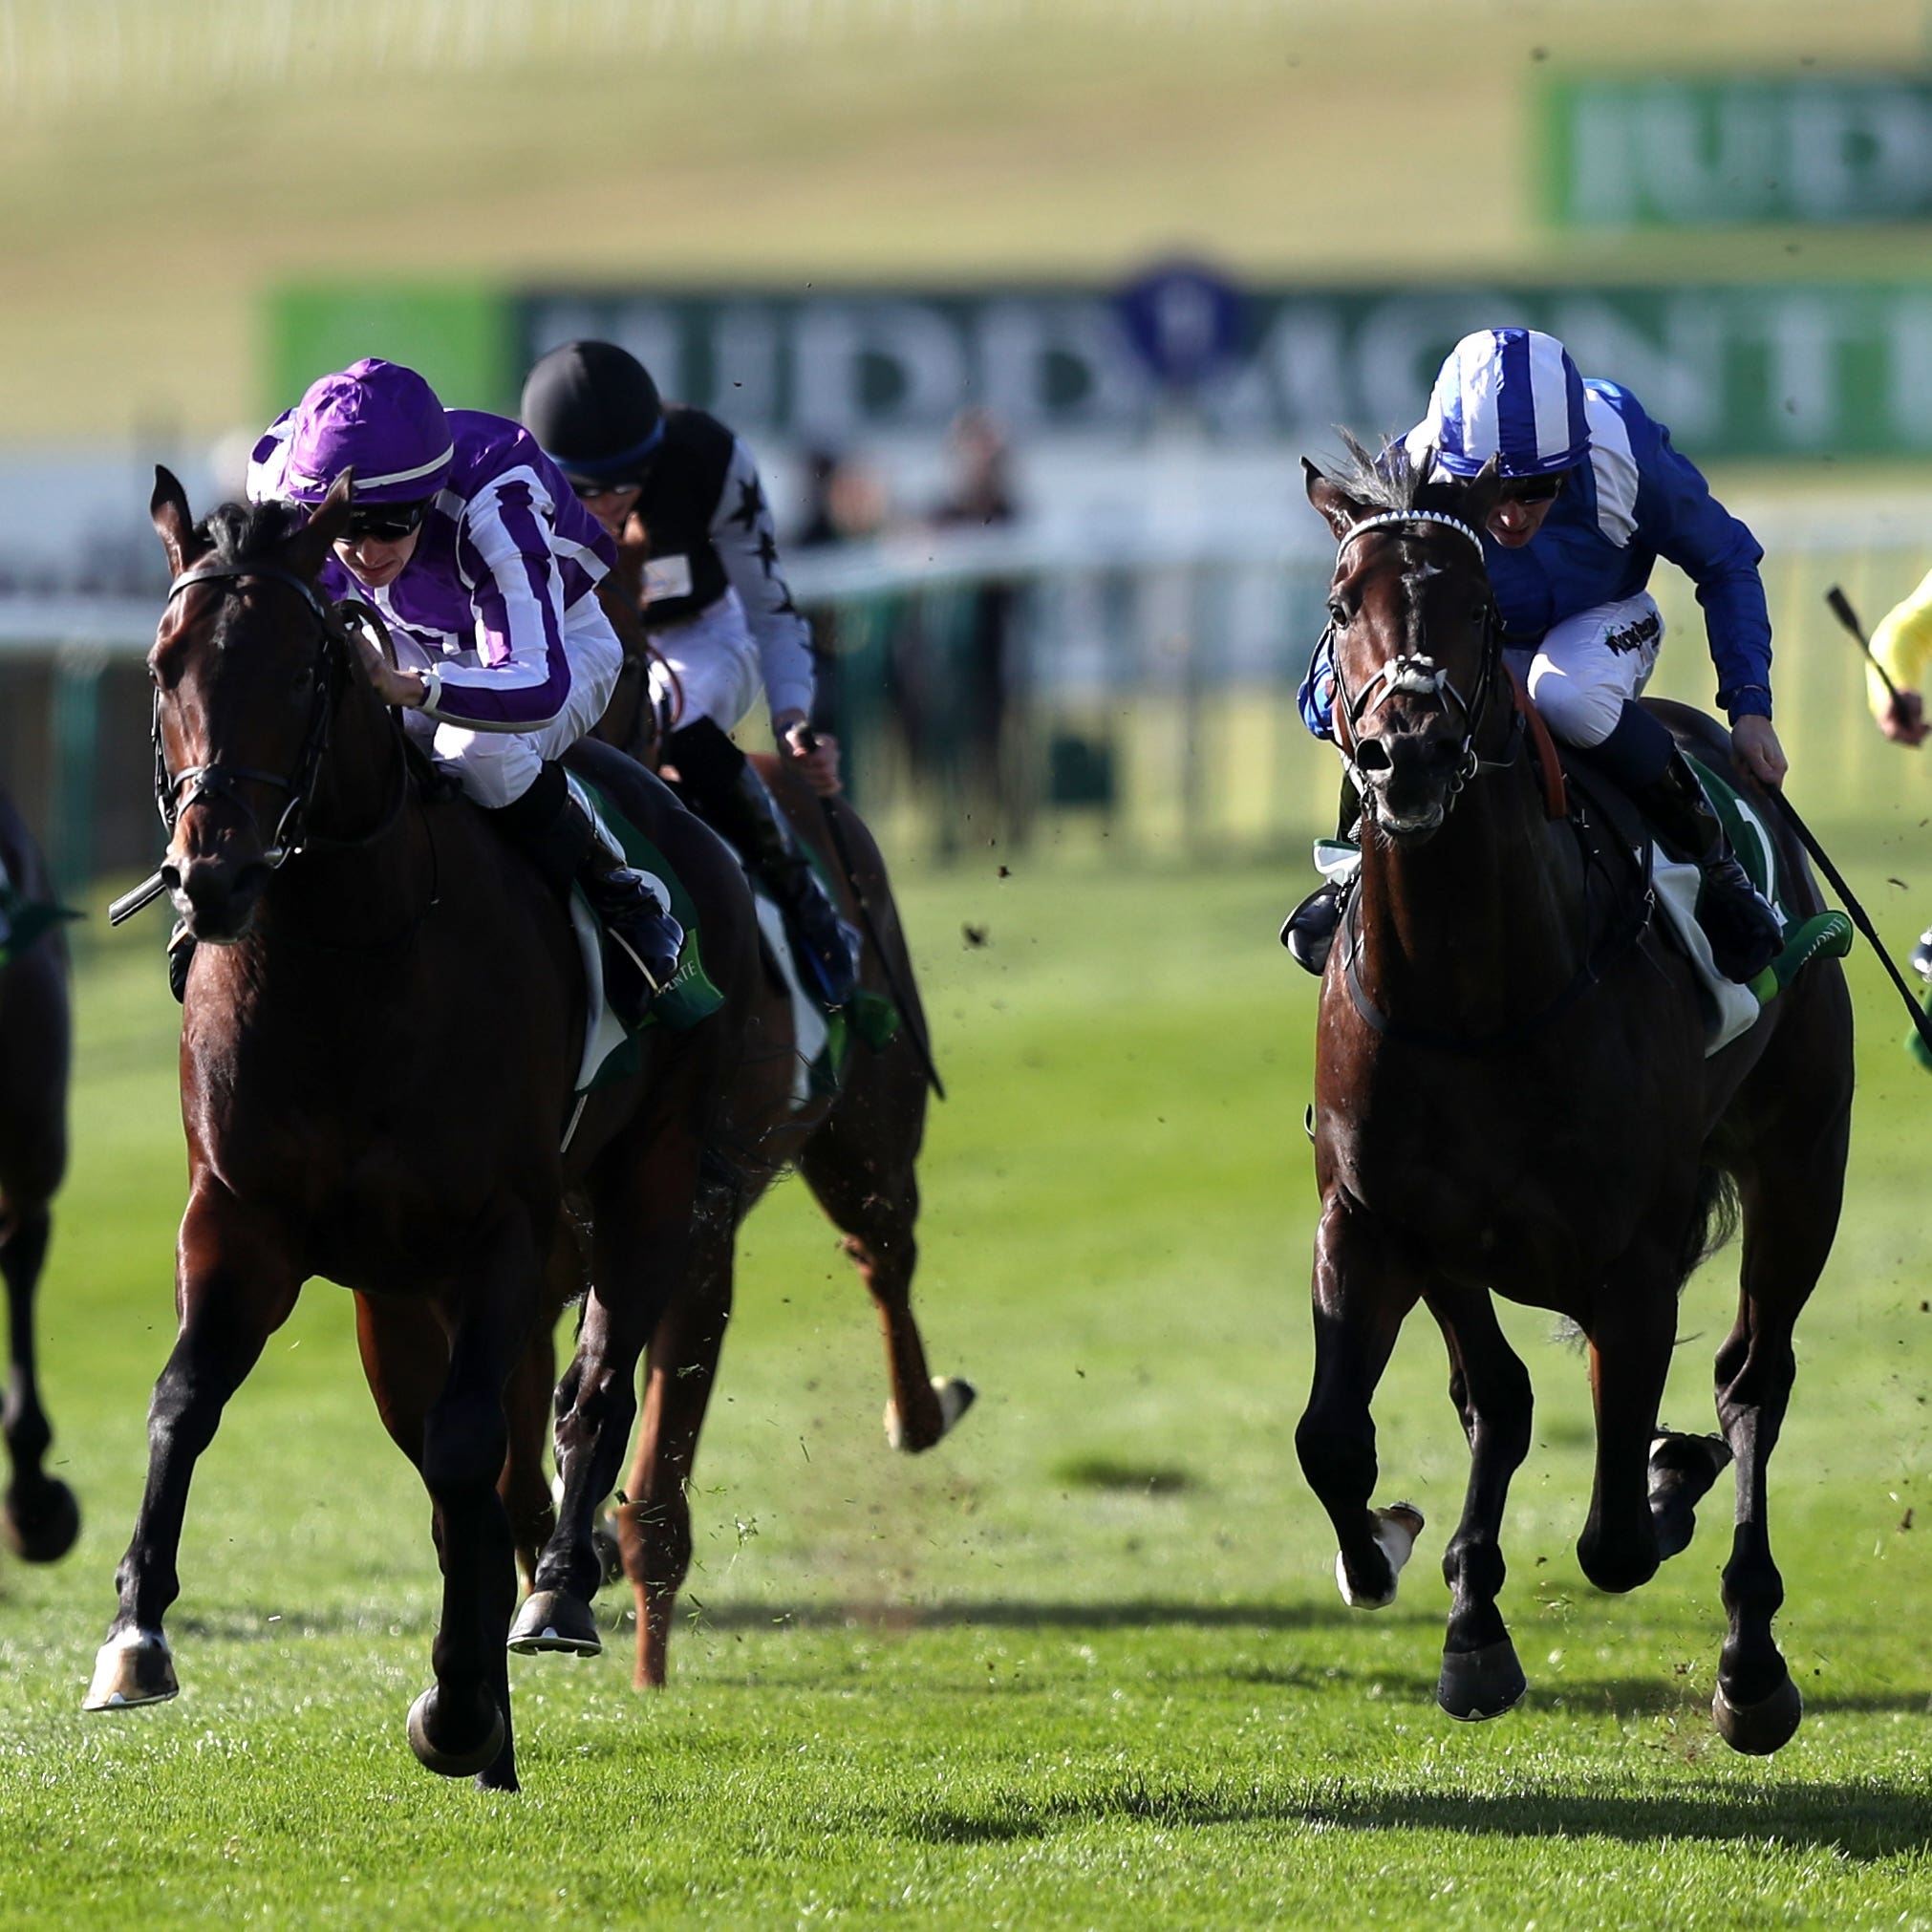 Ten Sovereigns and Jash are set to clash again at Royal Ascot